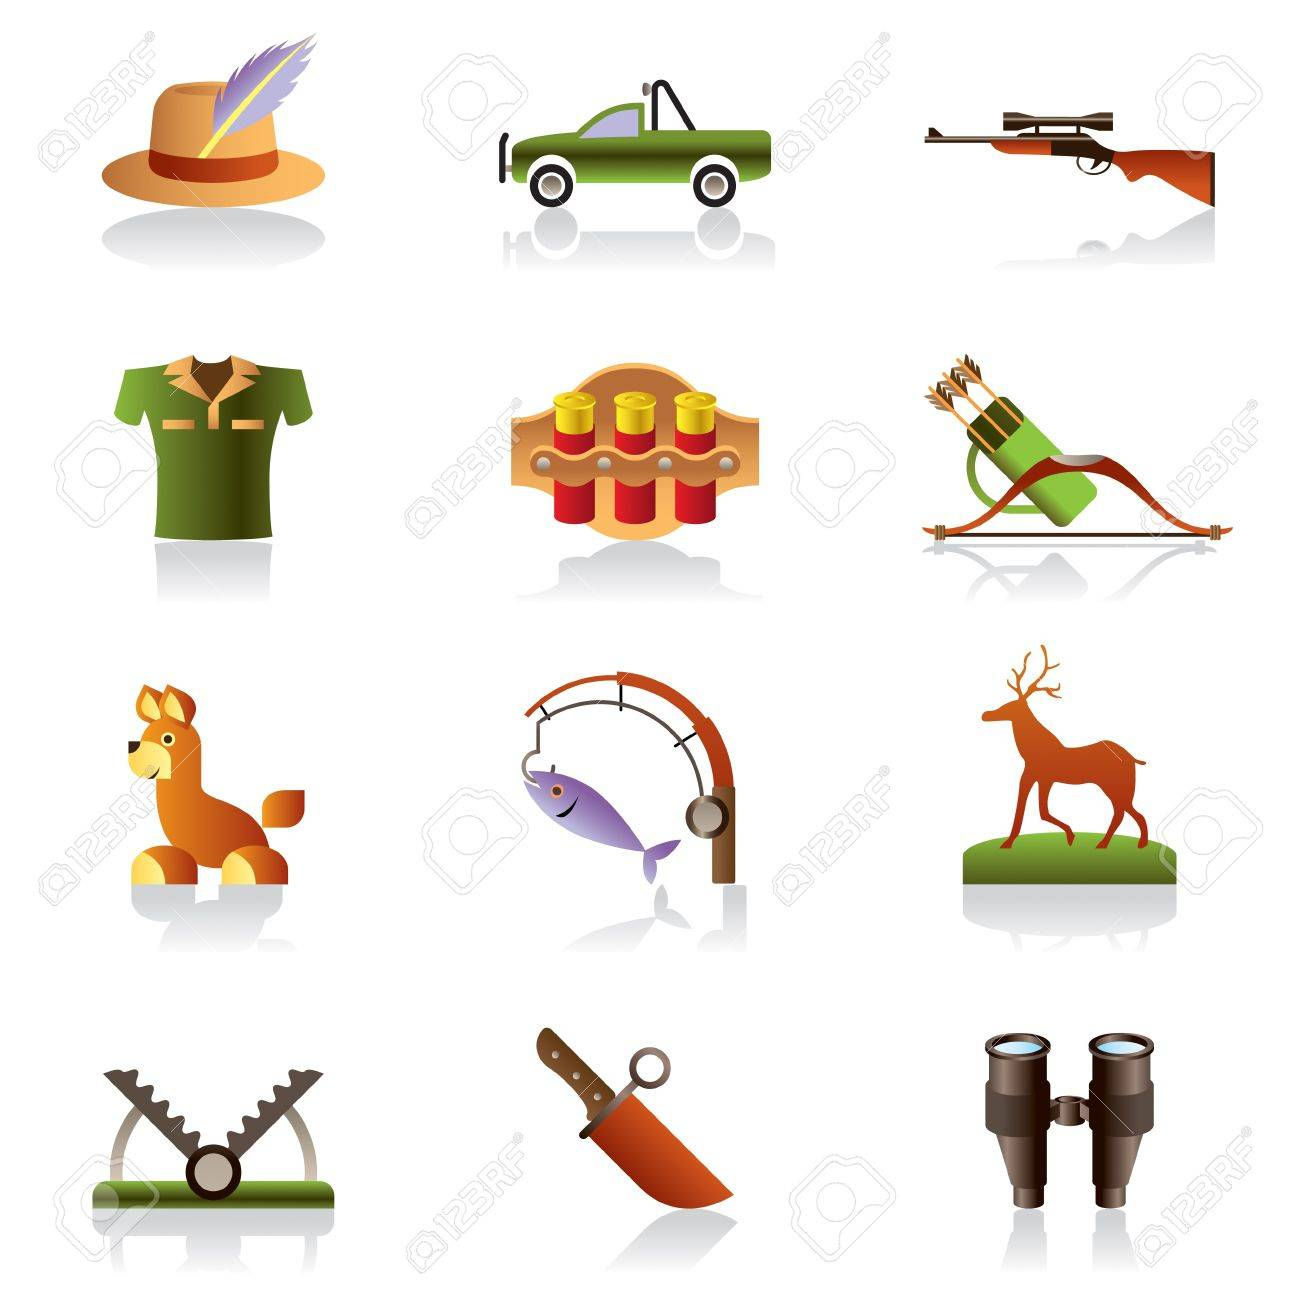 Hunting accessories and symbols illustration Stock Vector - 12481119